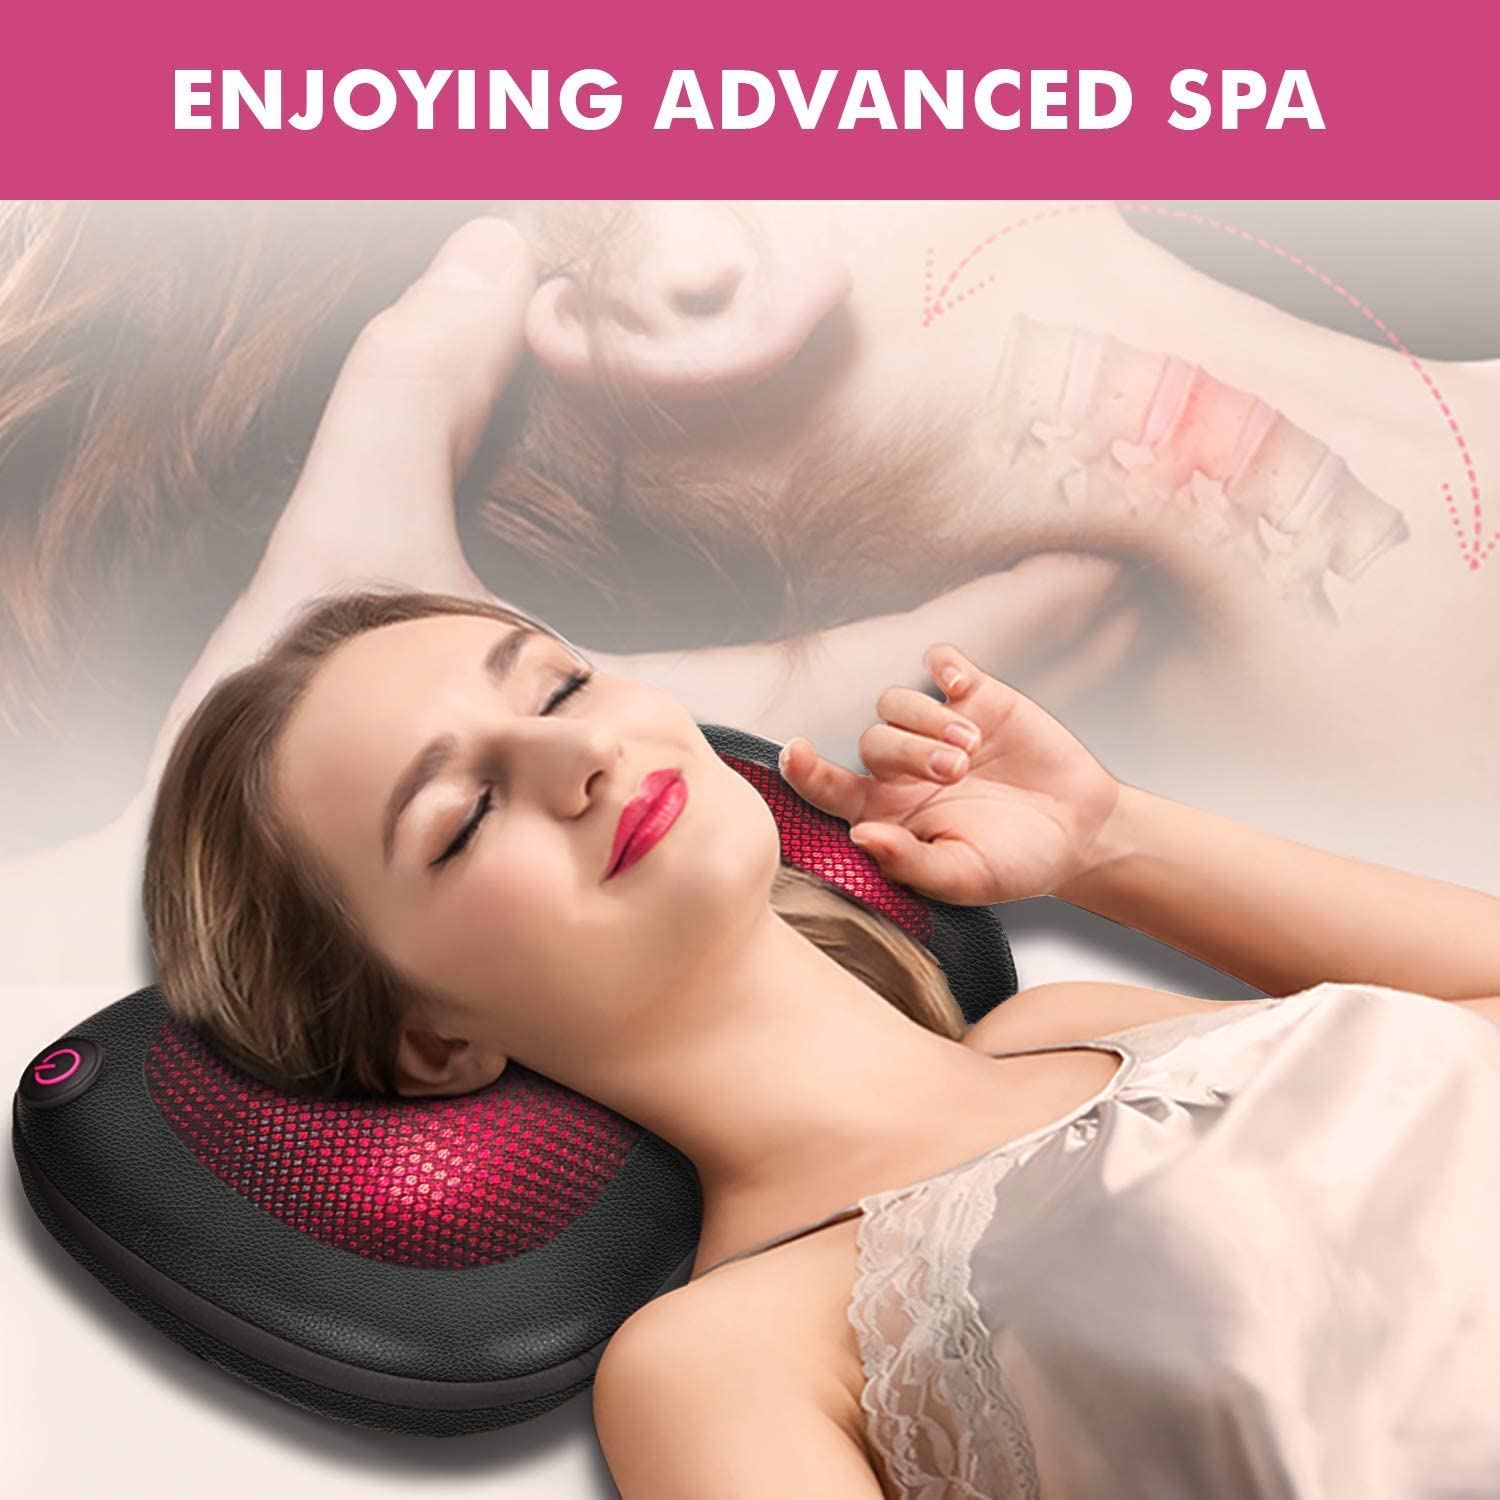 Neck Massager -Pillow Massager with Infrared Heat, Shiatsu Back and Neck Massager for Shoulders, Lower Back, Calf, Relaxation Gifts for Women/Men/Dad/Mom, Use at Home, Office, Car